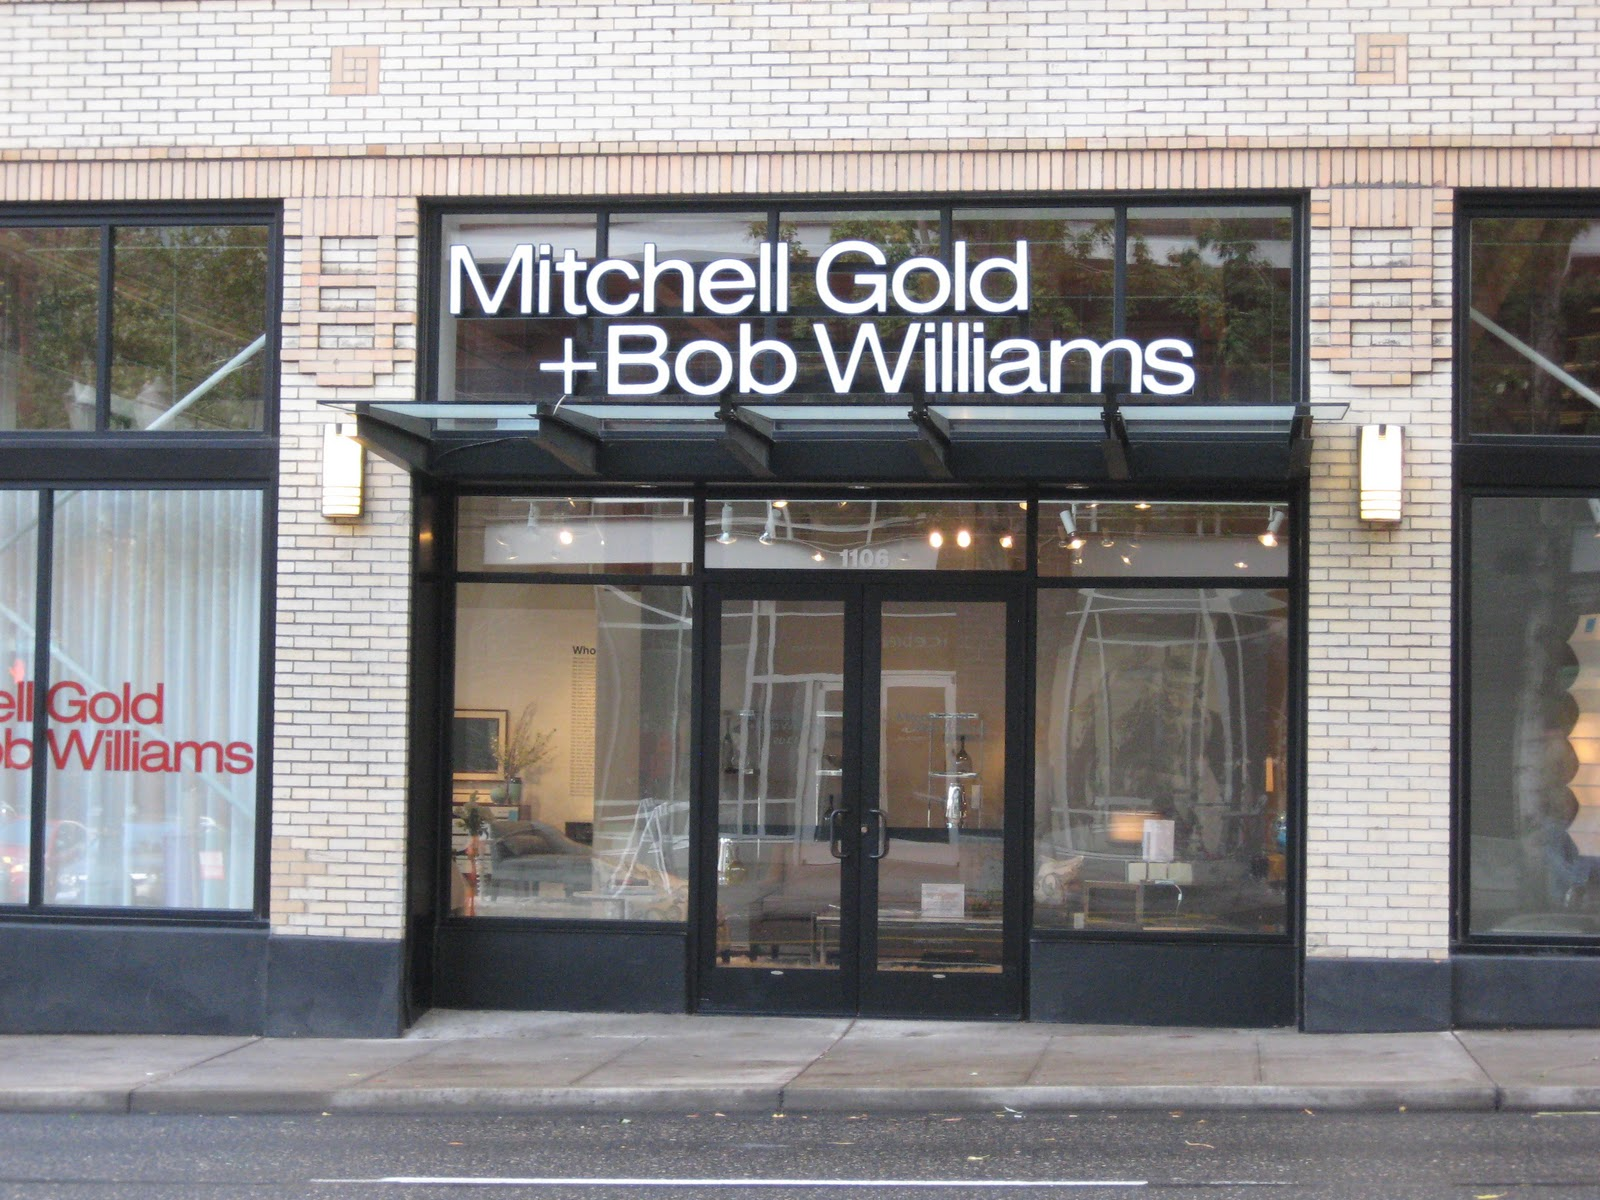 MITCHEL GOLD + BOB WILLIAMS STORE IN MASSACHUSETTS MITCHEL GOLD + BOB WILLIAMS STORE IN MASSACHUSETTS IMG 1550